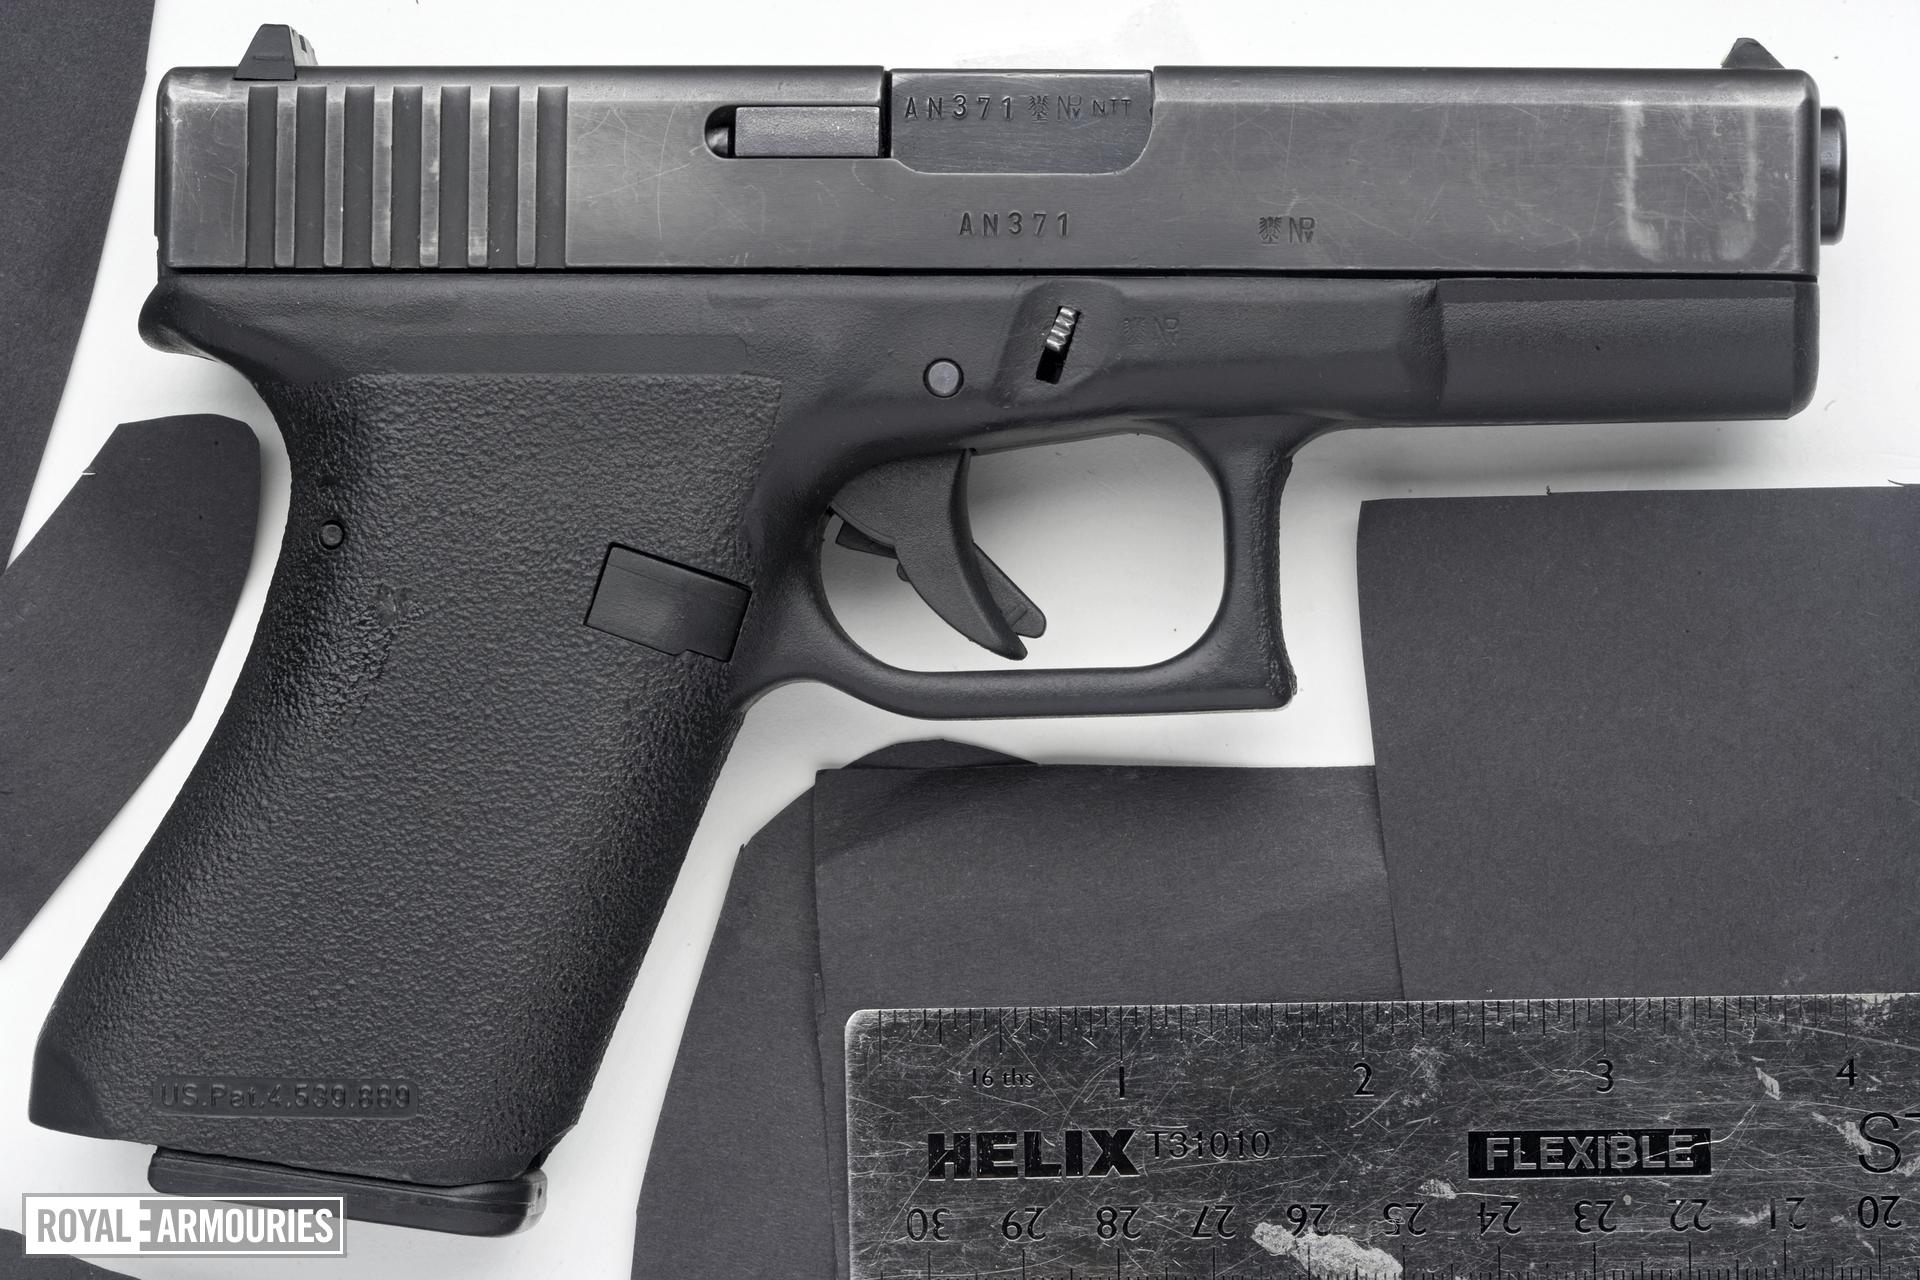 Centrefire self-loading pistol - Glock 19 Generation 1 For UK Special Forces pistol trials.